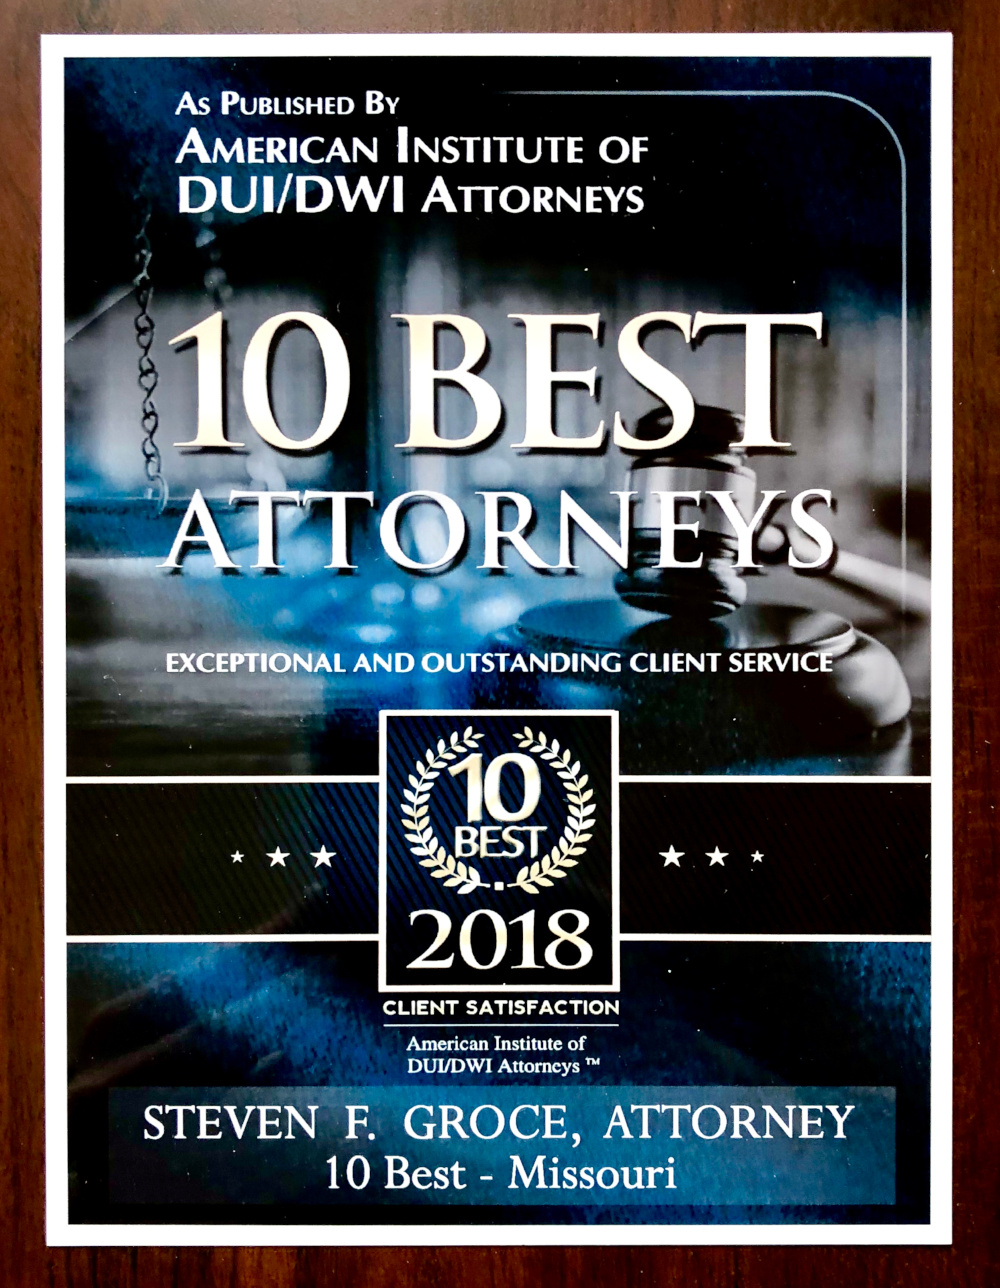 Best DWI/DUI Attorneys, Lawyers Missouri